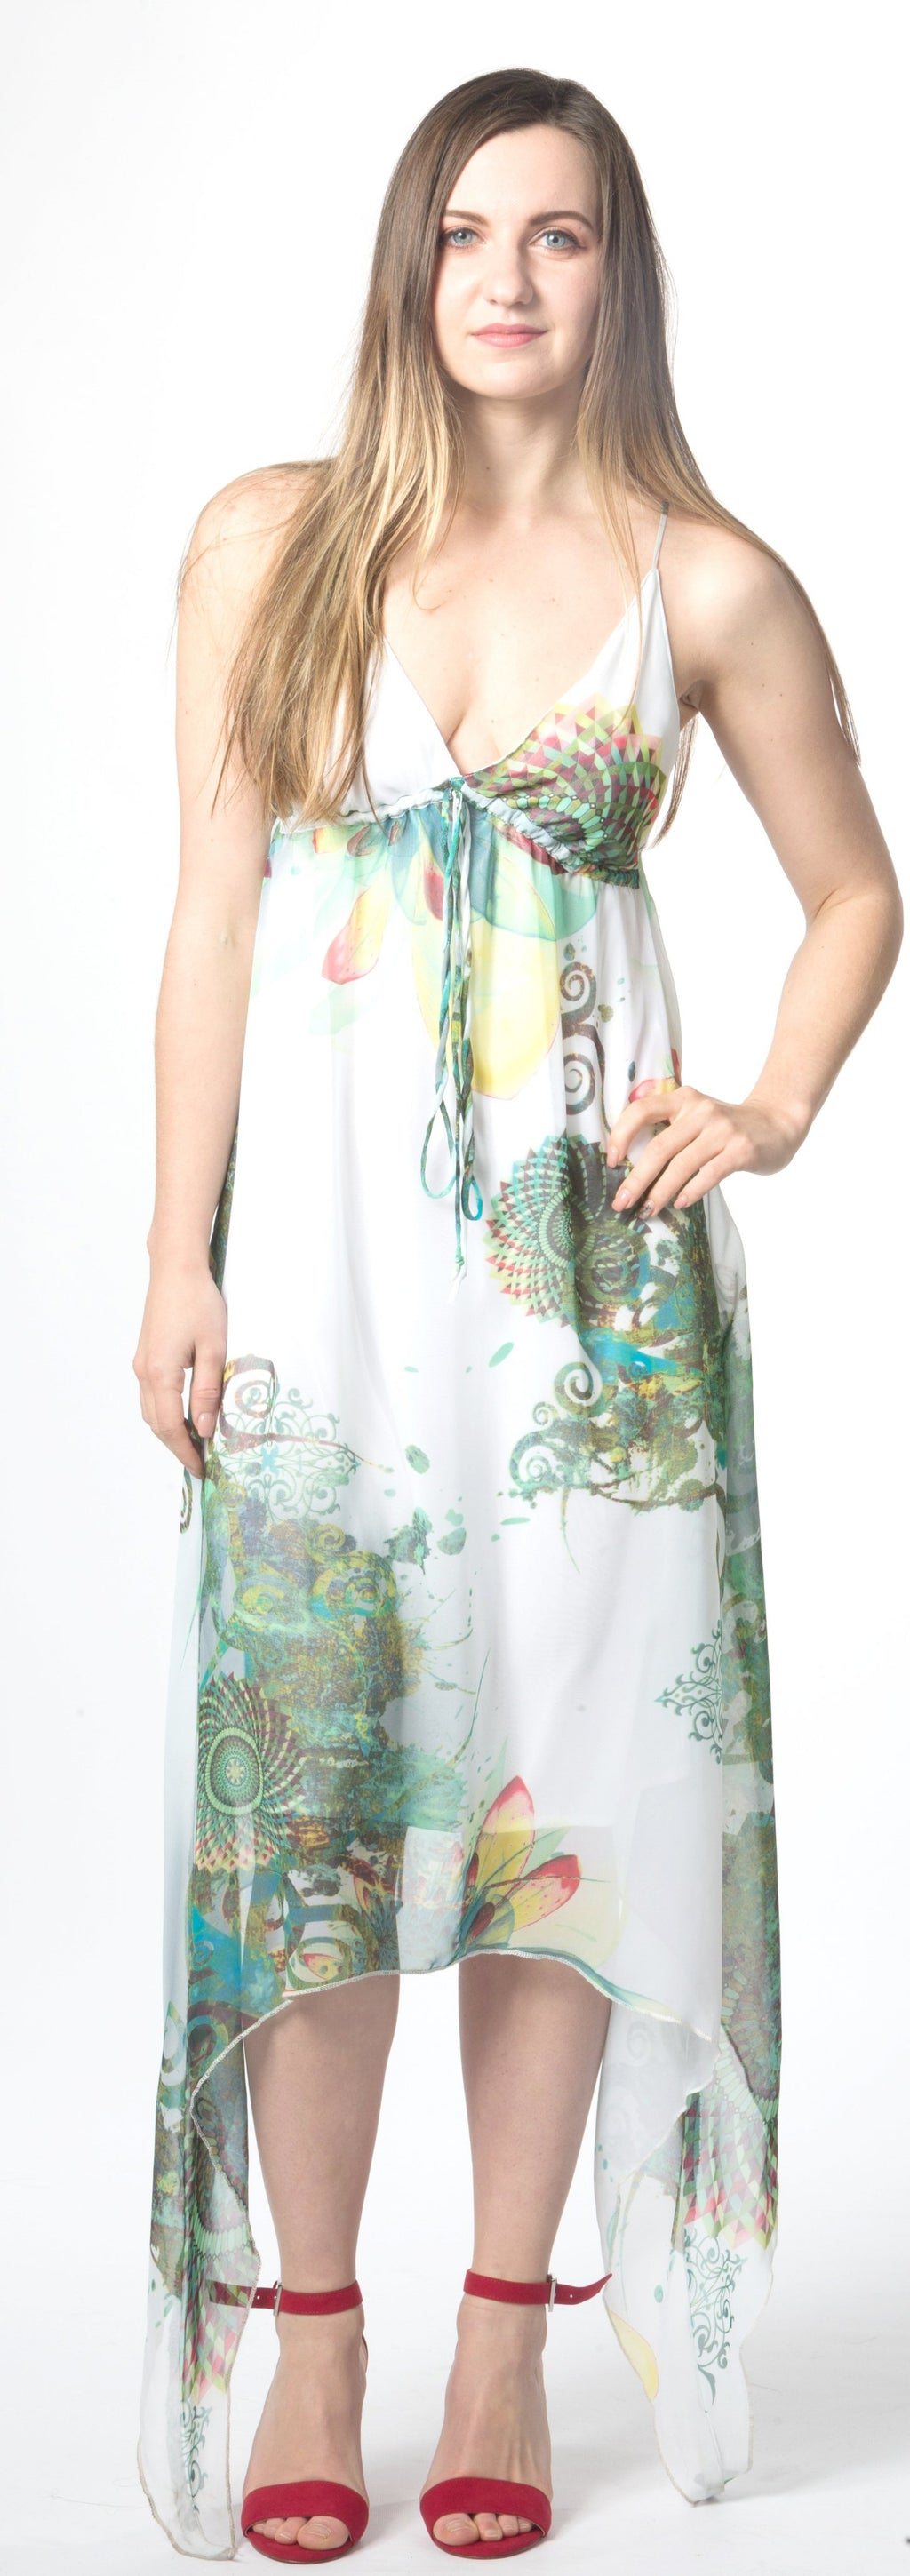 women's floral chiffon dresses chiffon dresses online long flowing chiffon dresses cocktail and party chiffon dresses chiffon cocktail dresses